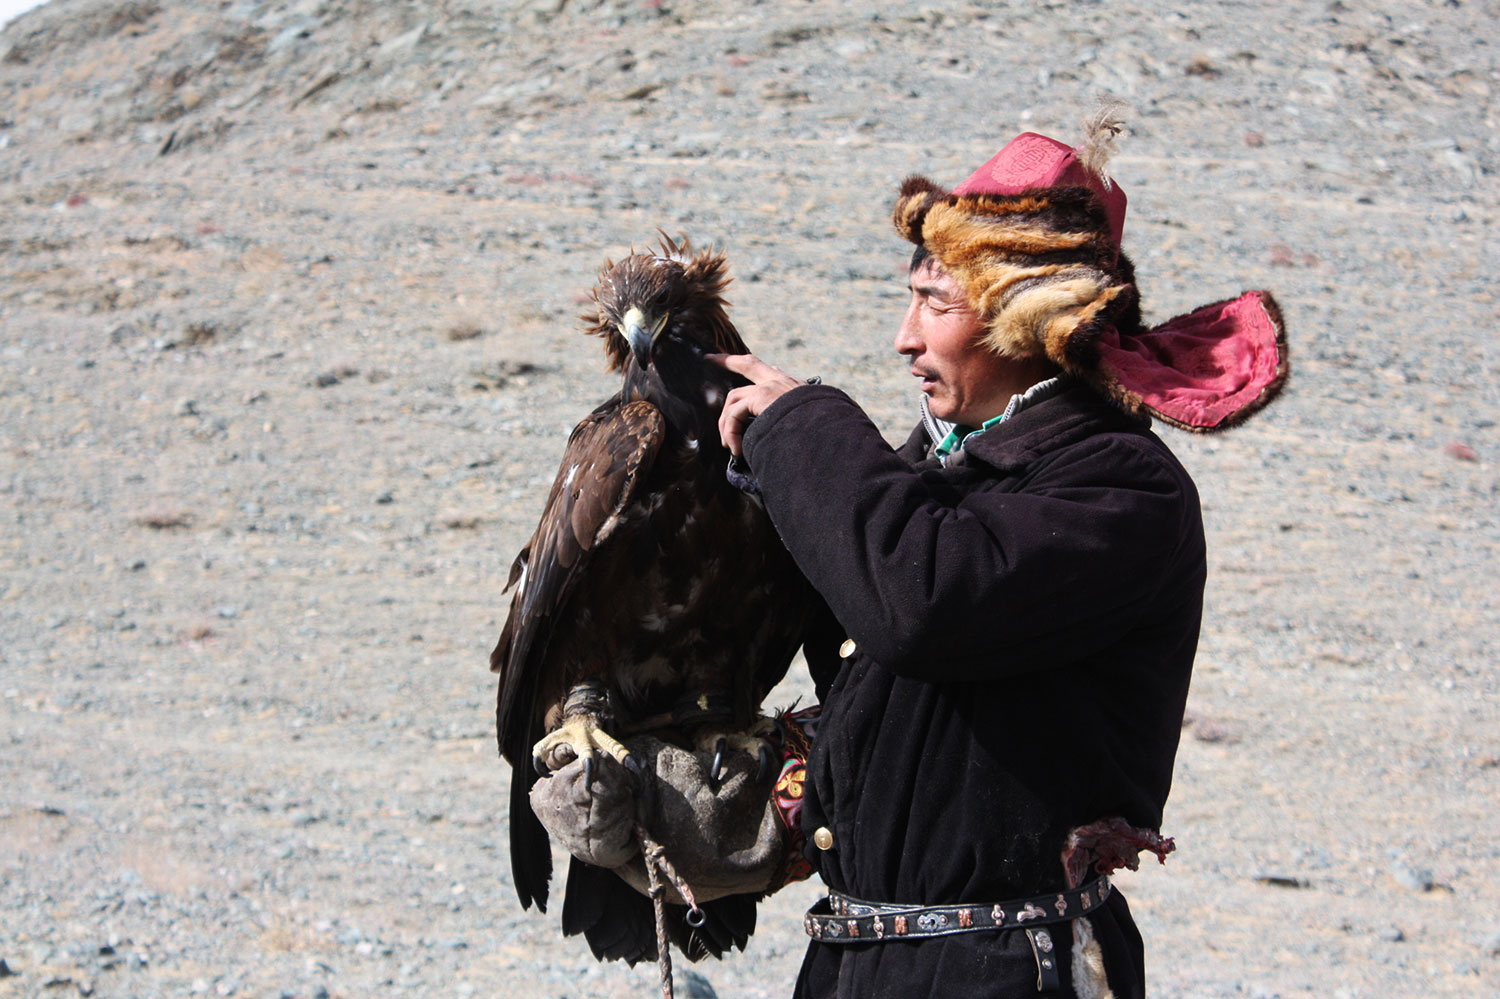 mongolia kazakh eagle hunter